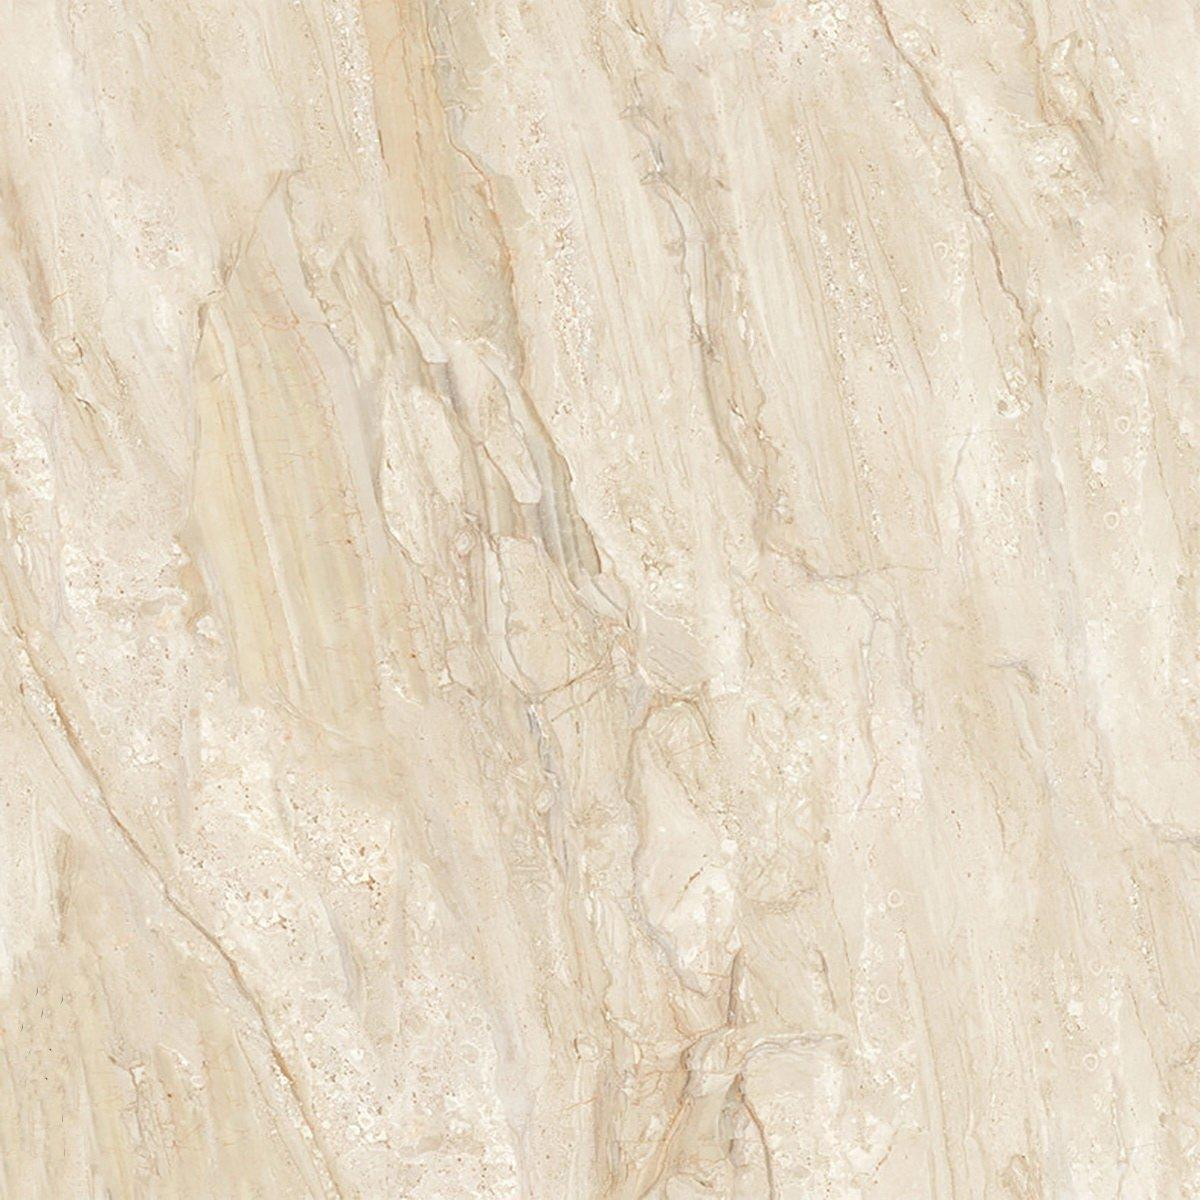 Hotel project tile Cream marfil Full polished marble tiles 100x100cm/40x40'